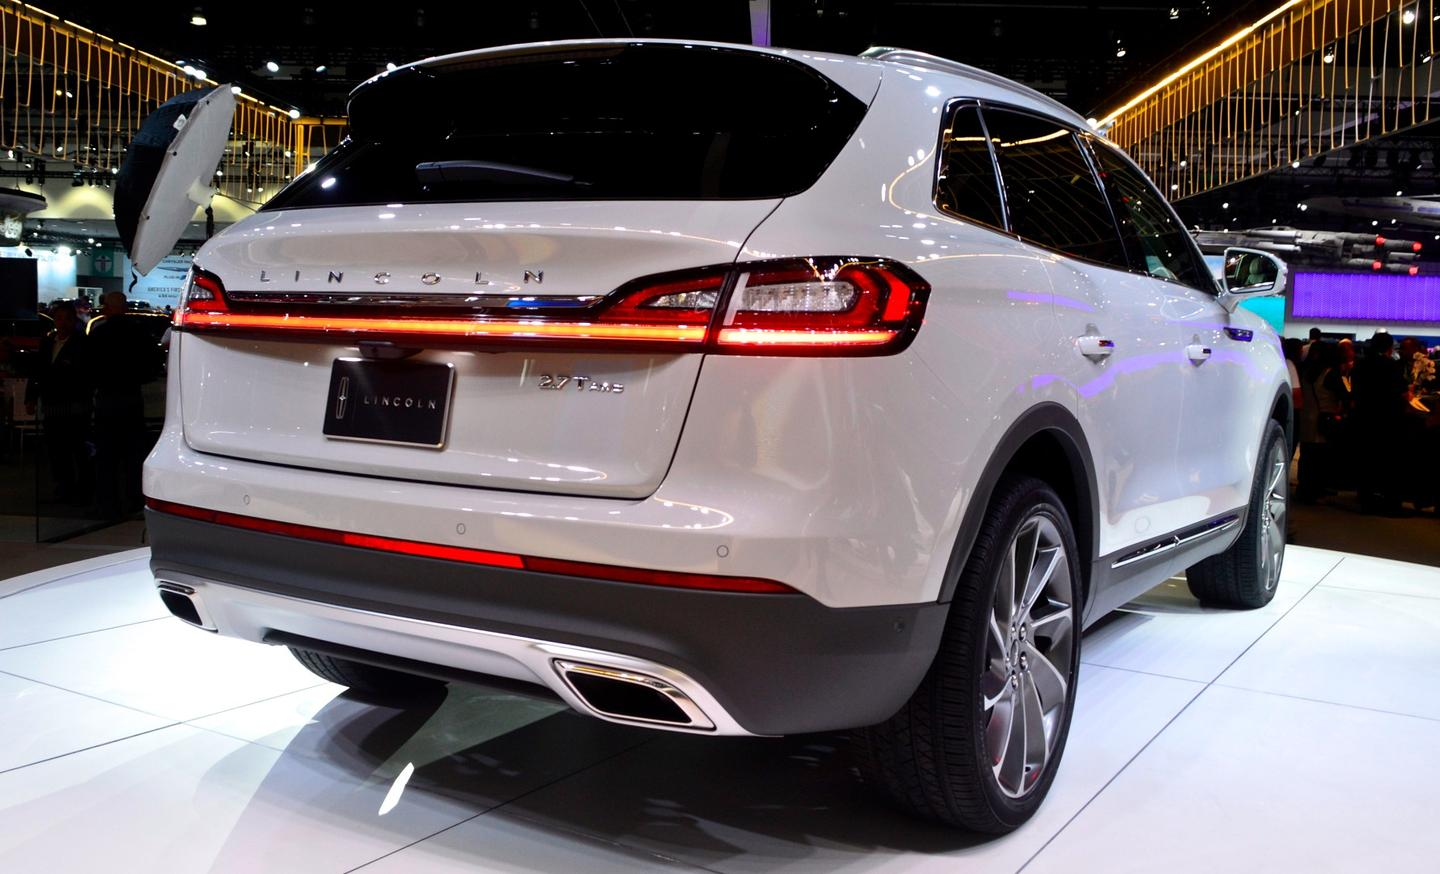 Lincoln debuts the Nautilus, its new mid-size SUV